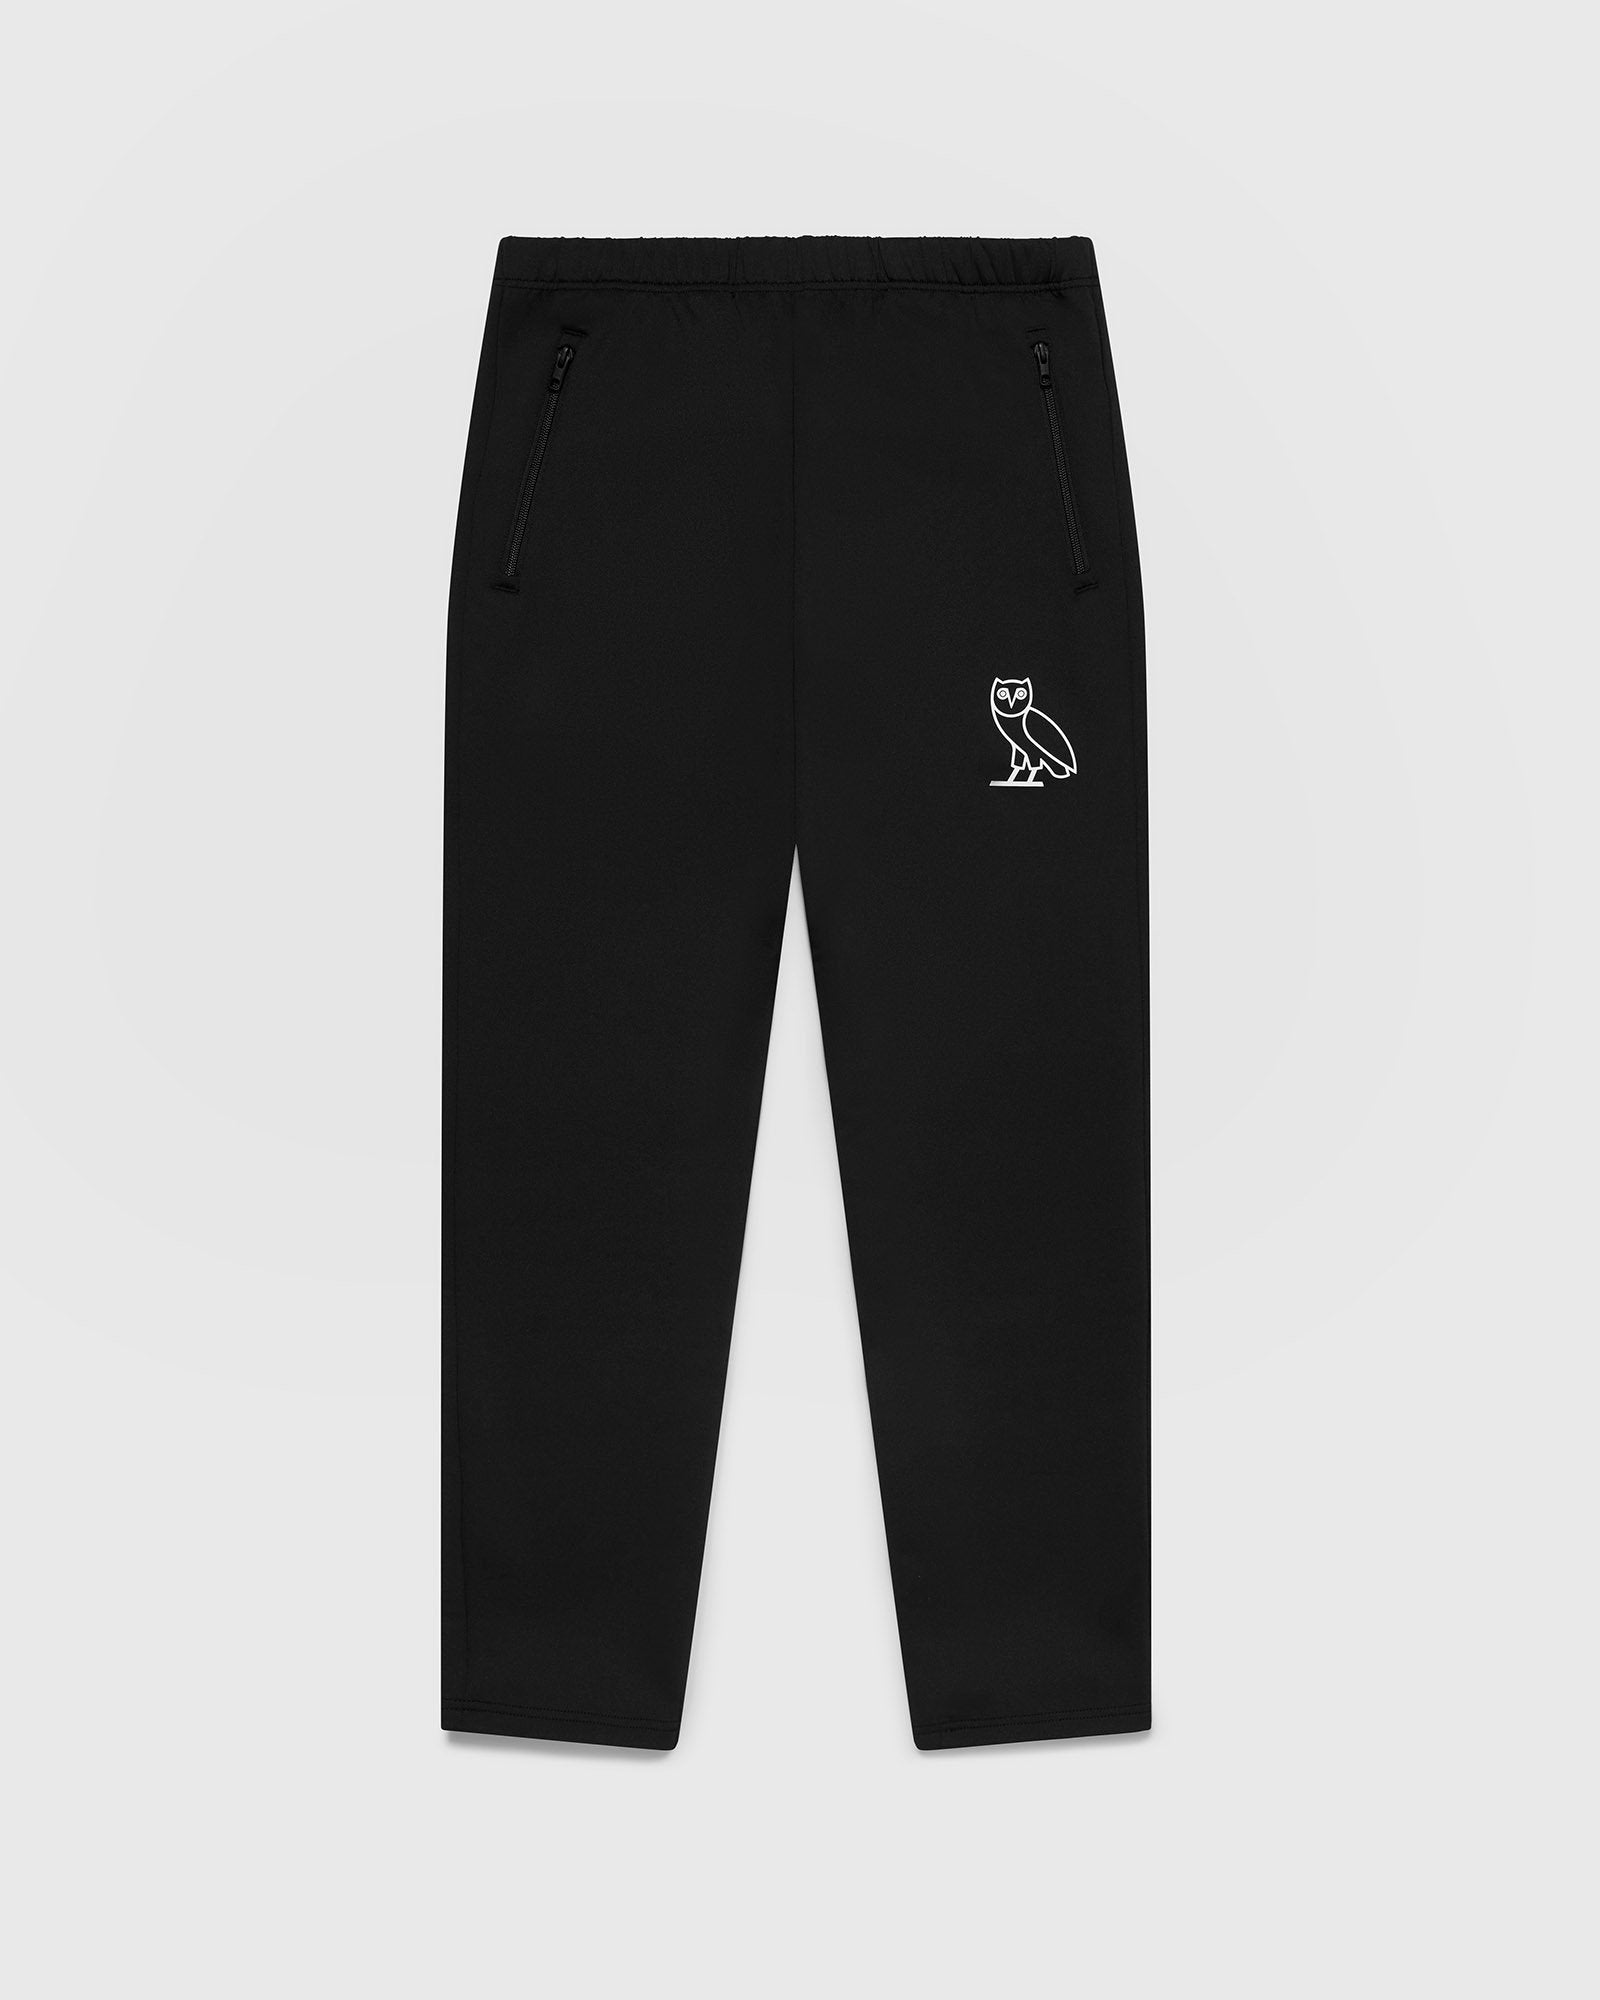 DOUBLE KNIT TRACK PANT - BLACK IMAGE #1